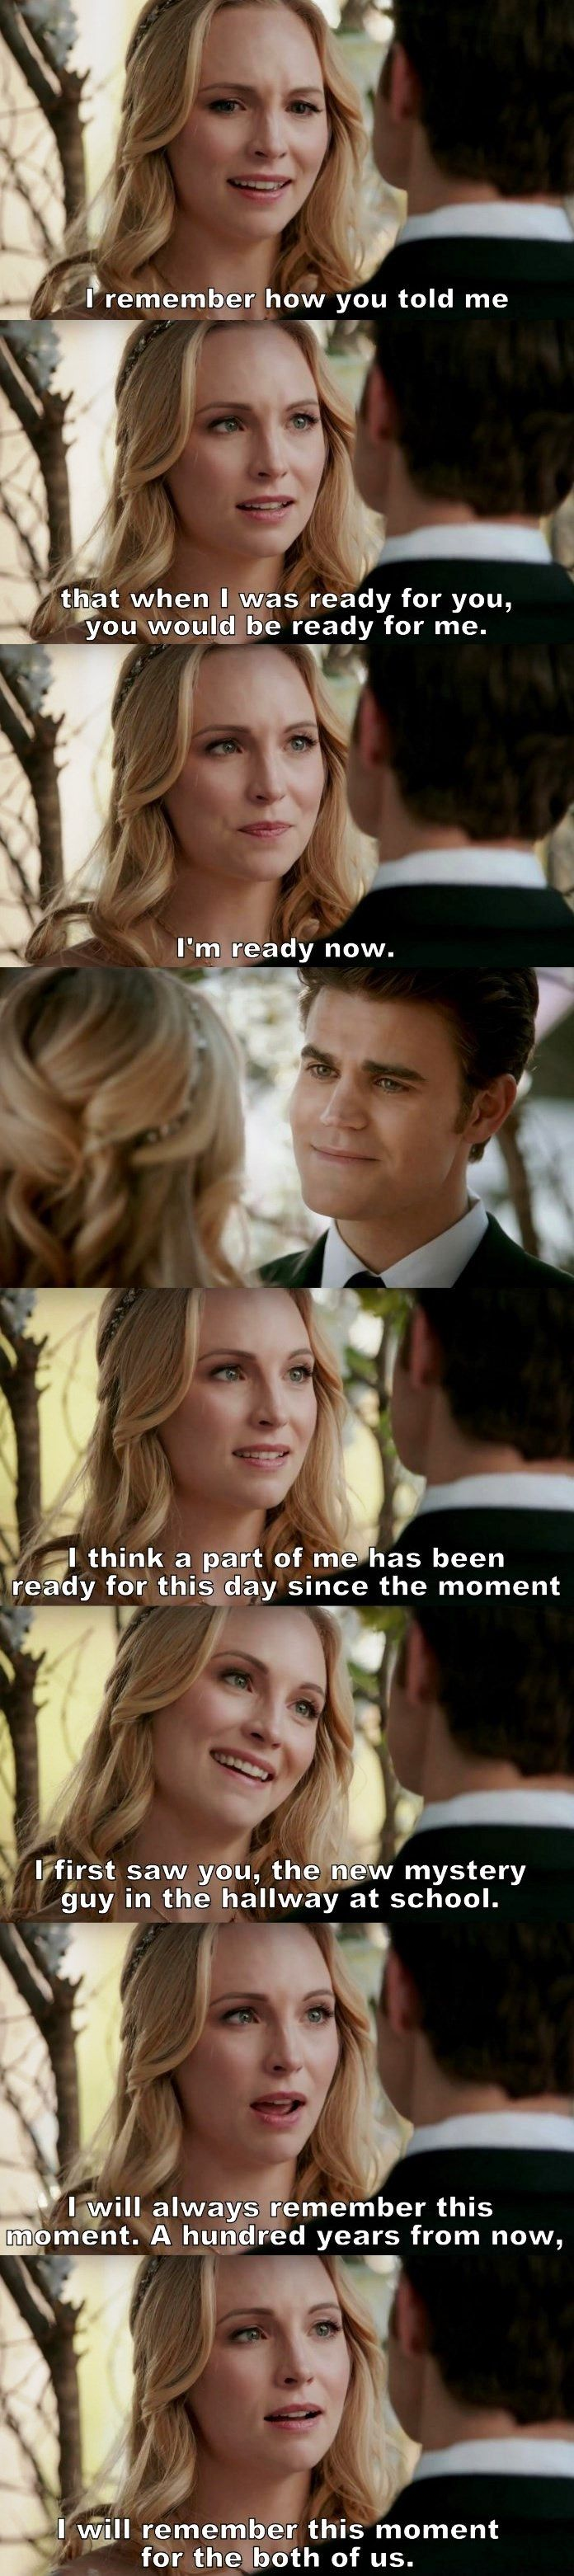 The Vampire Diaries TVD S08E15 - I'm a Stelena fan but Steroline has some cute moments too...